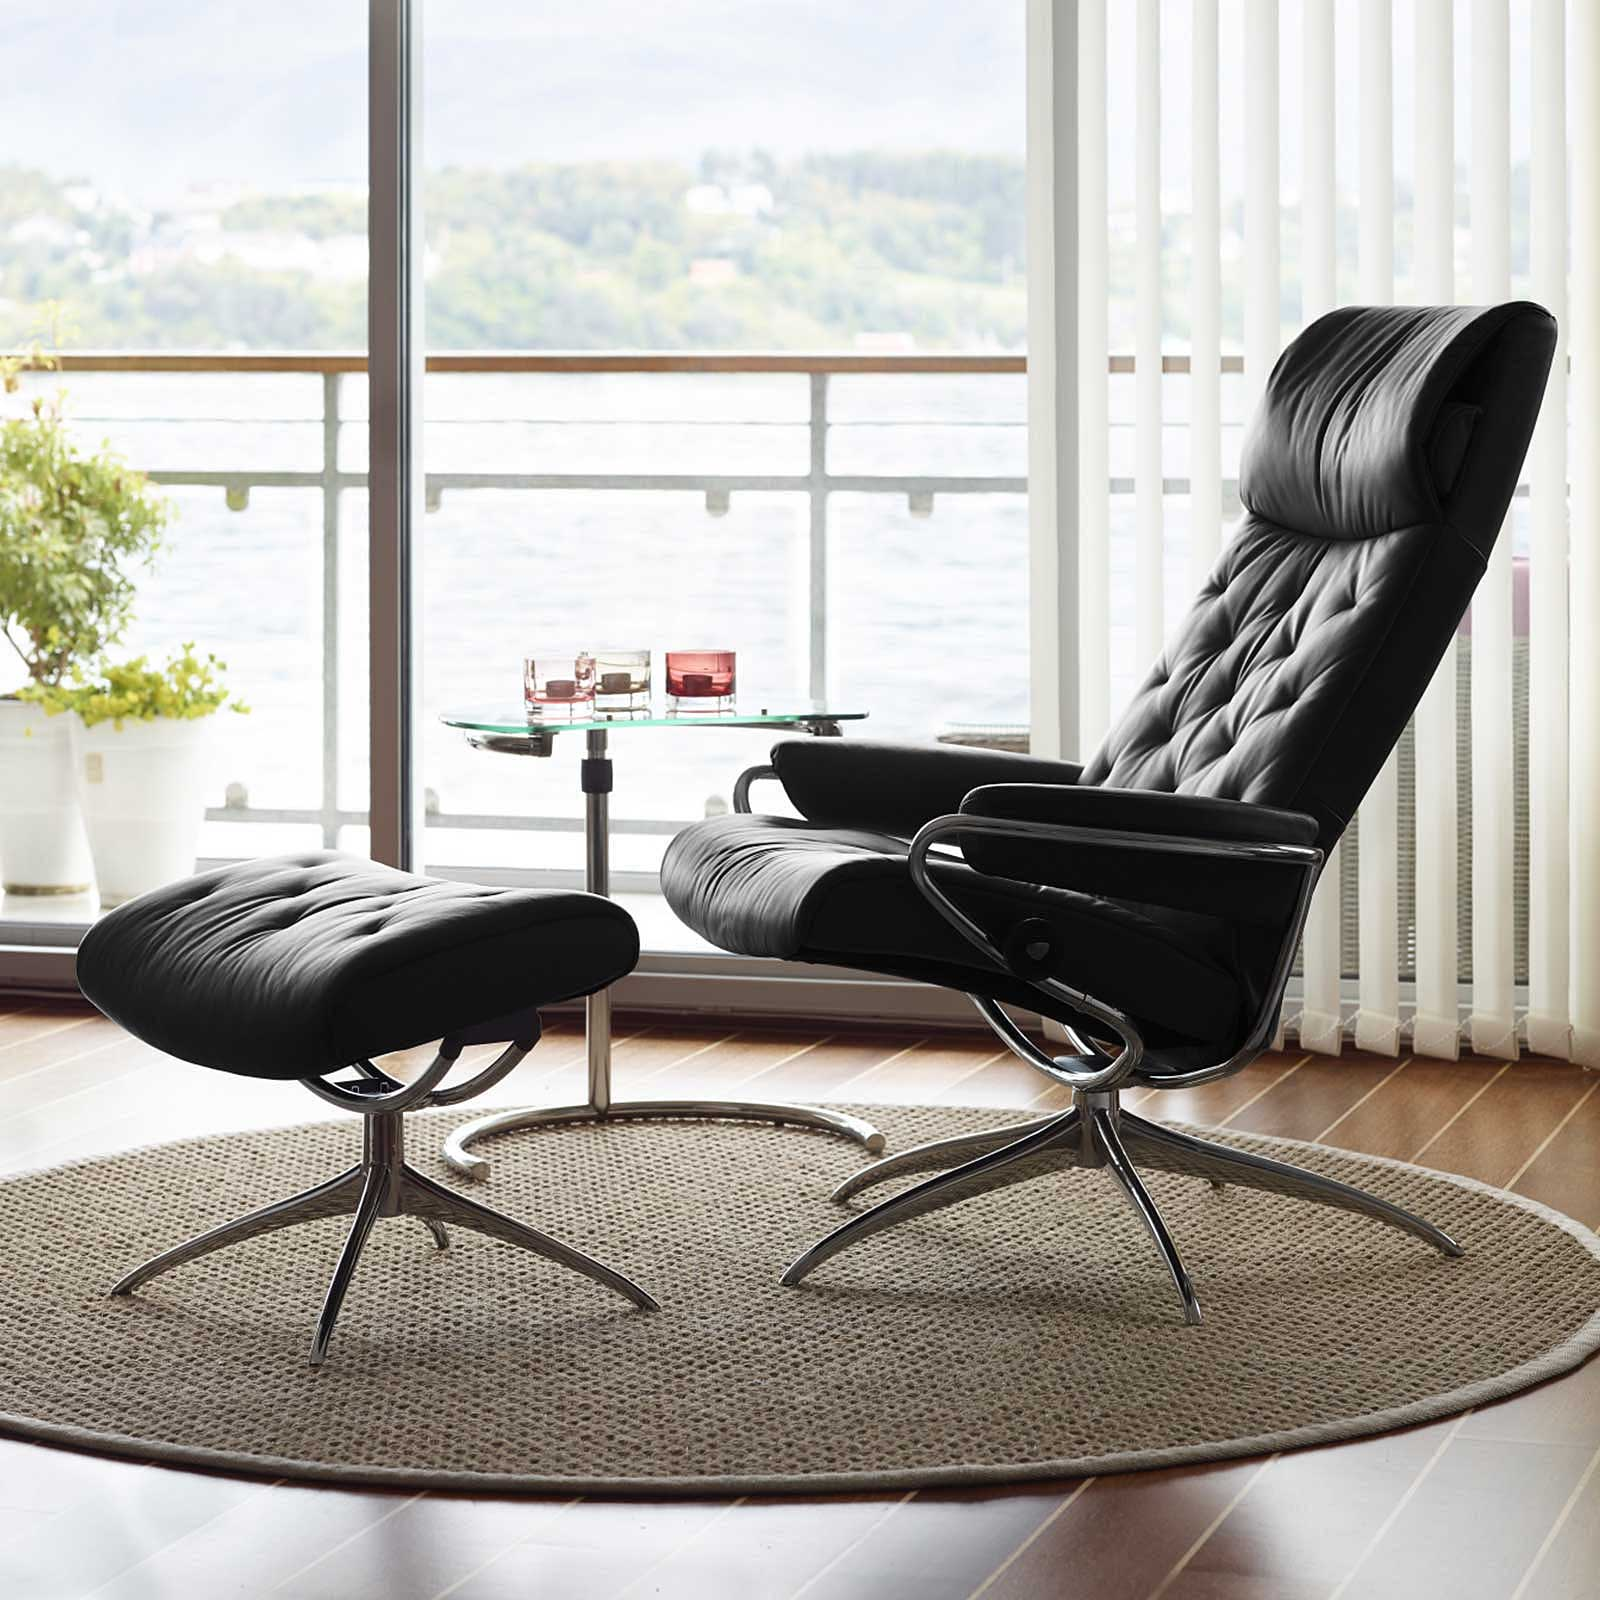 angebot stressless sessel metro m high back black hocker. Black Bedroom Furniture Sets. Home Design Ideas